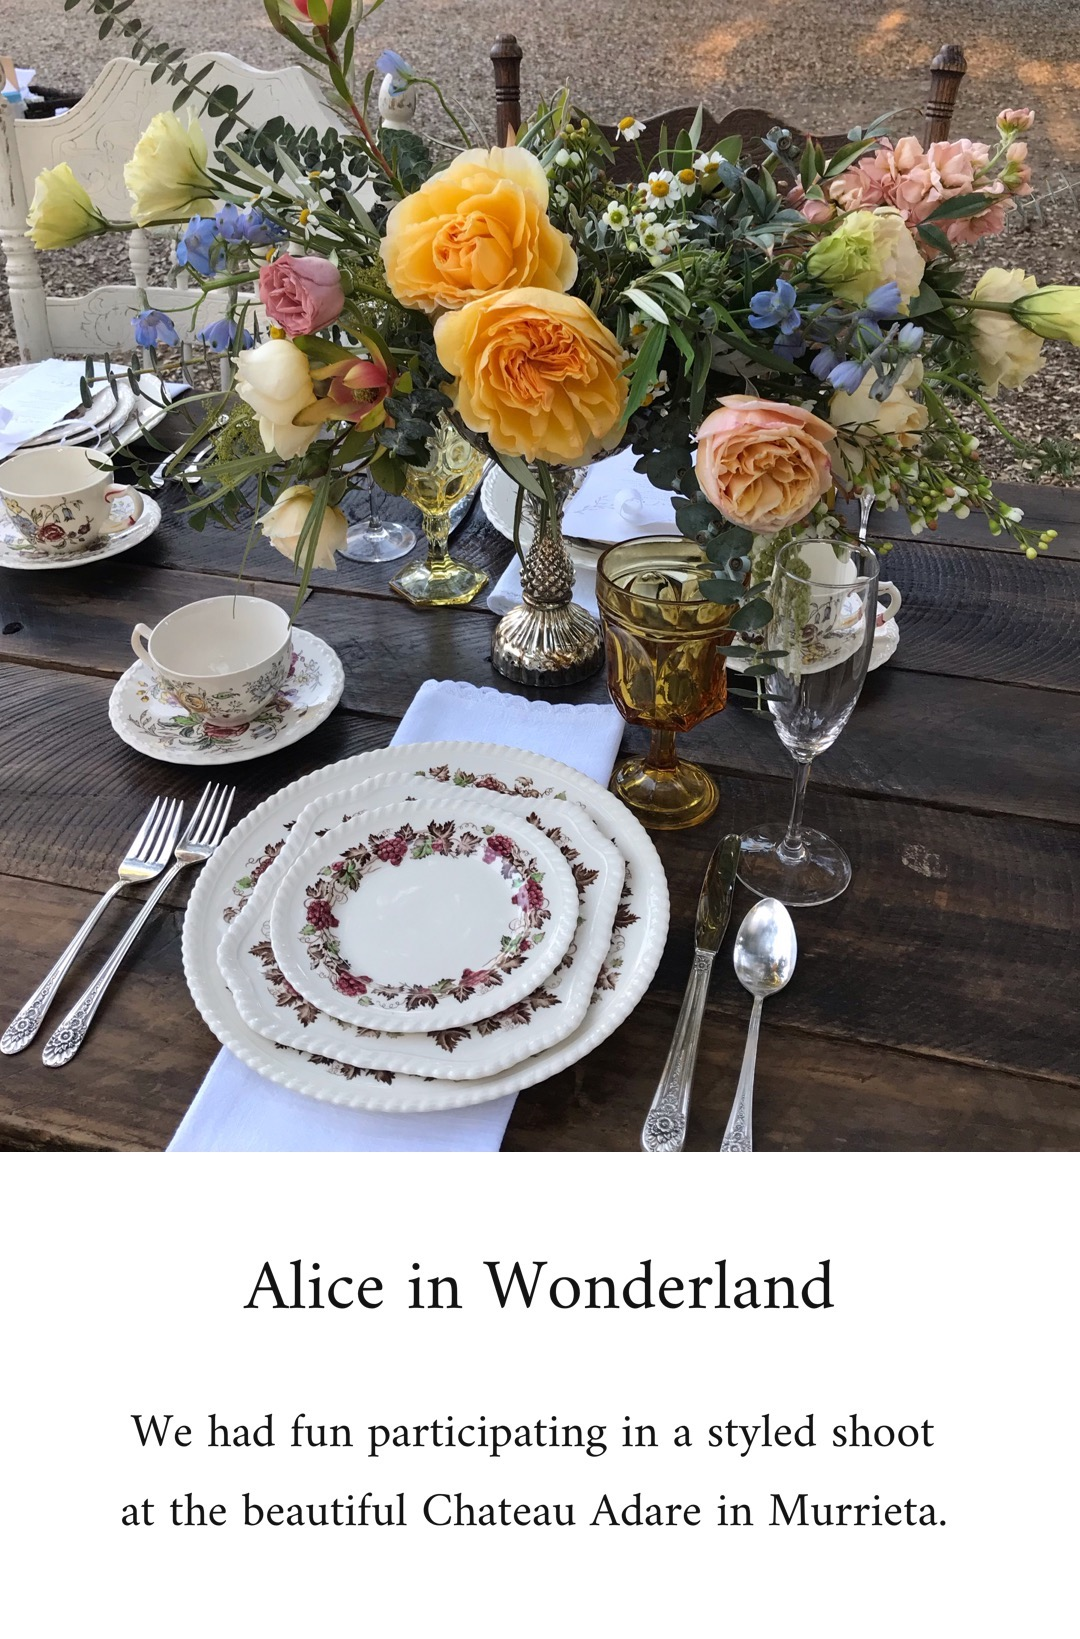 A photo journal of the styled shoot at Chateau Adare in Murrieta with the Alice in Wonderland theme. Tabletop rentals were provided by Birdie in a Barn.